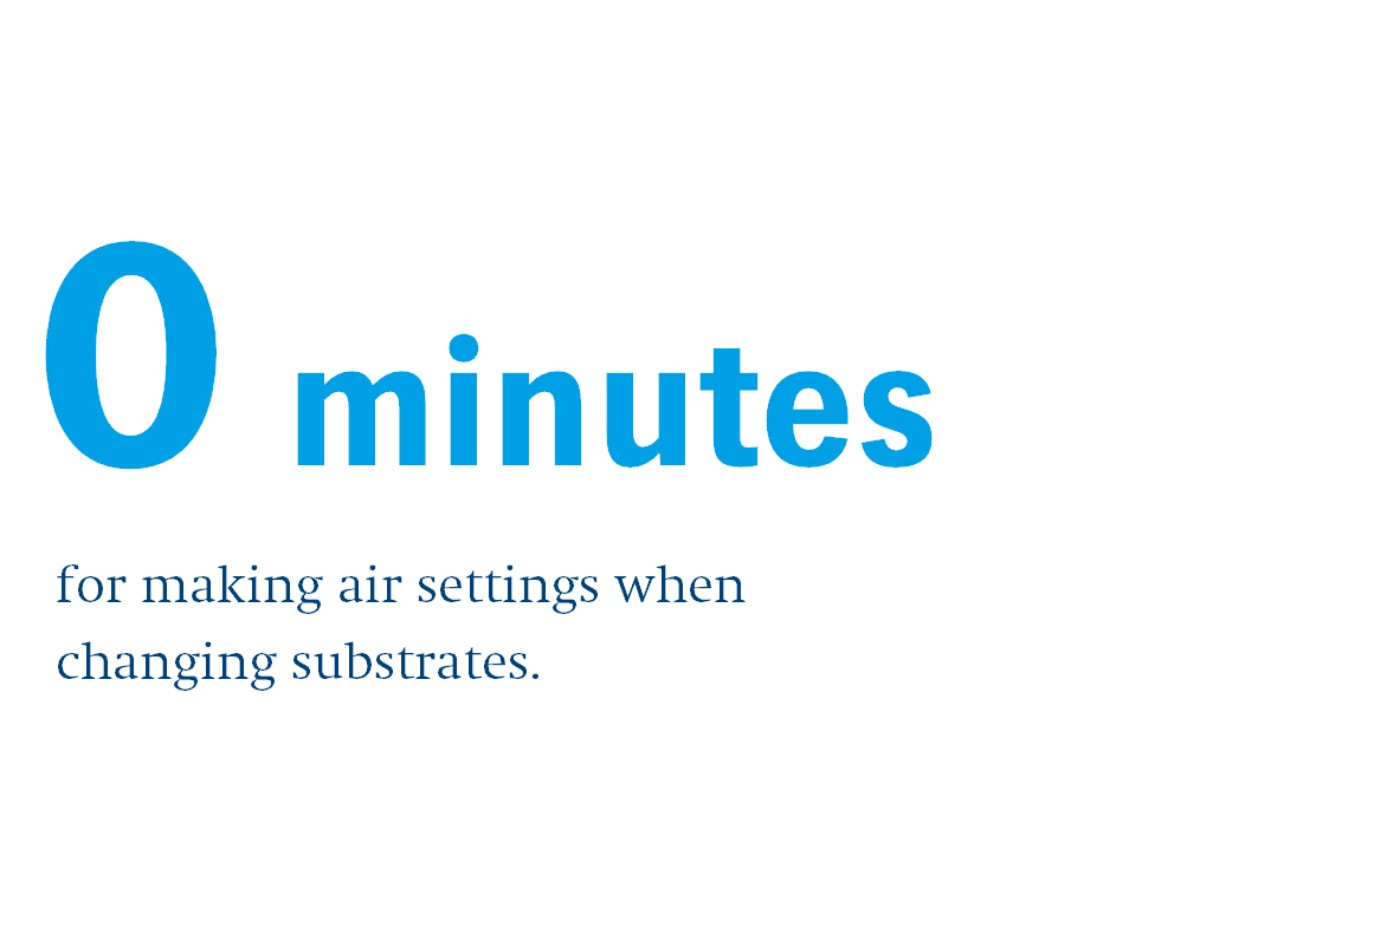 0_minutes_for_making_air_settings_sx102